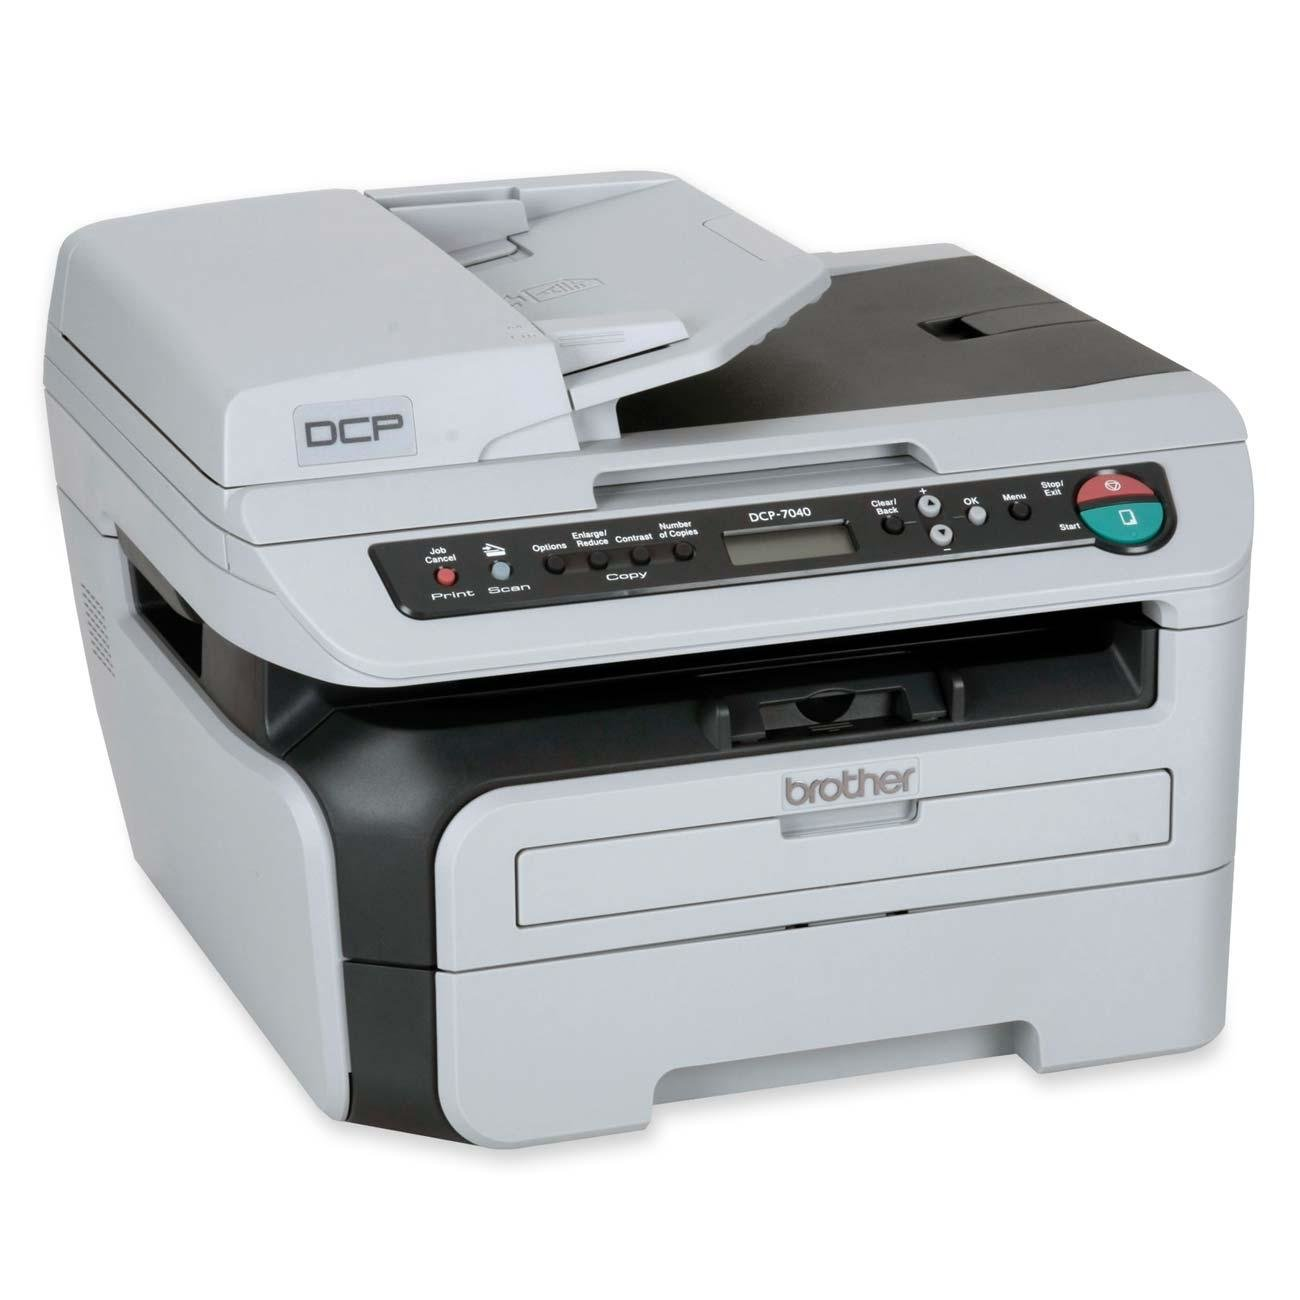 BROTHER DCP-7040 PRINTER SCANNER TREIBER WINDOWS XP